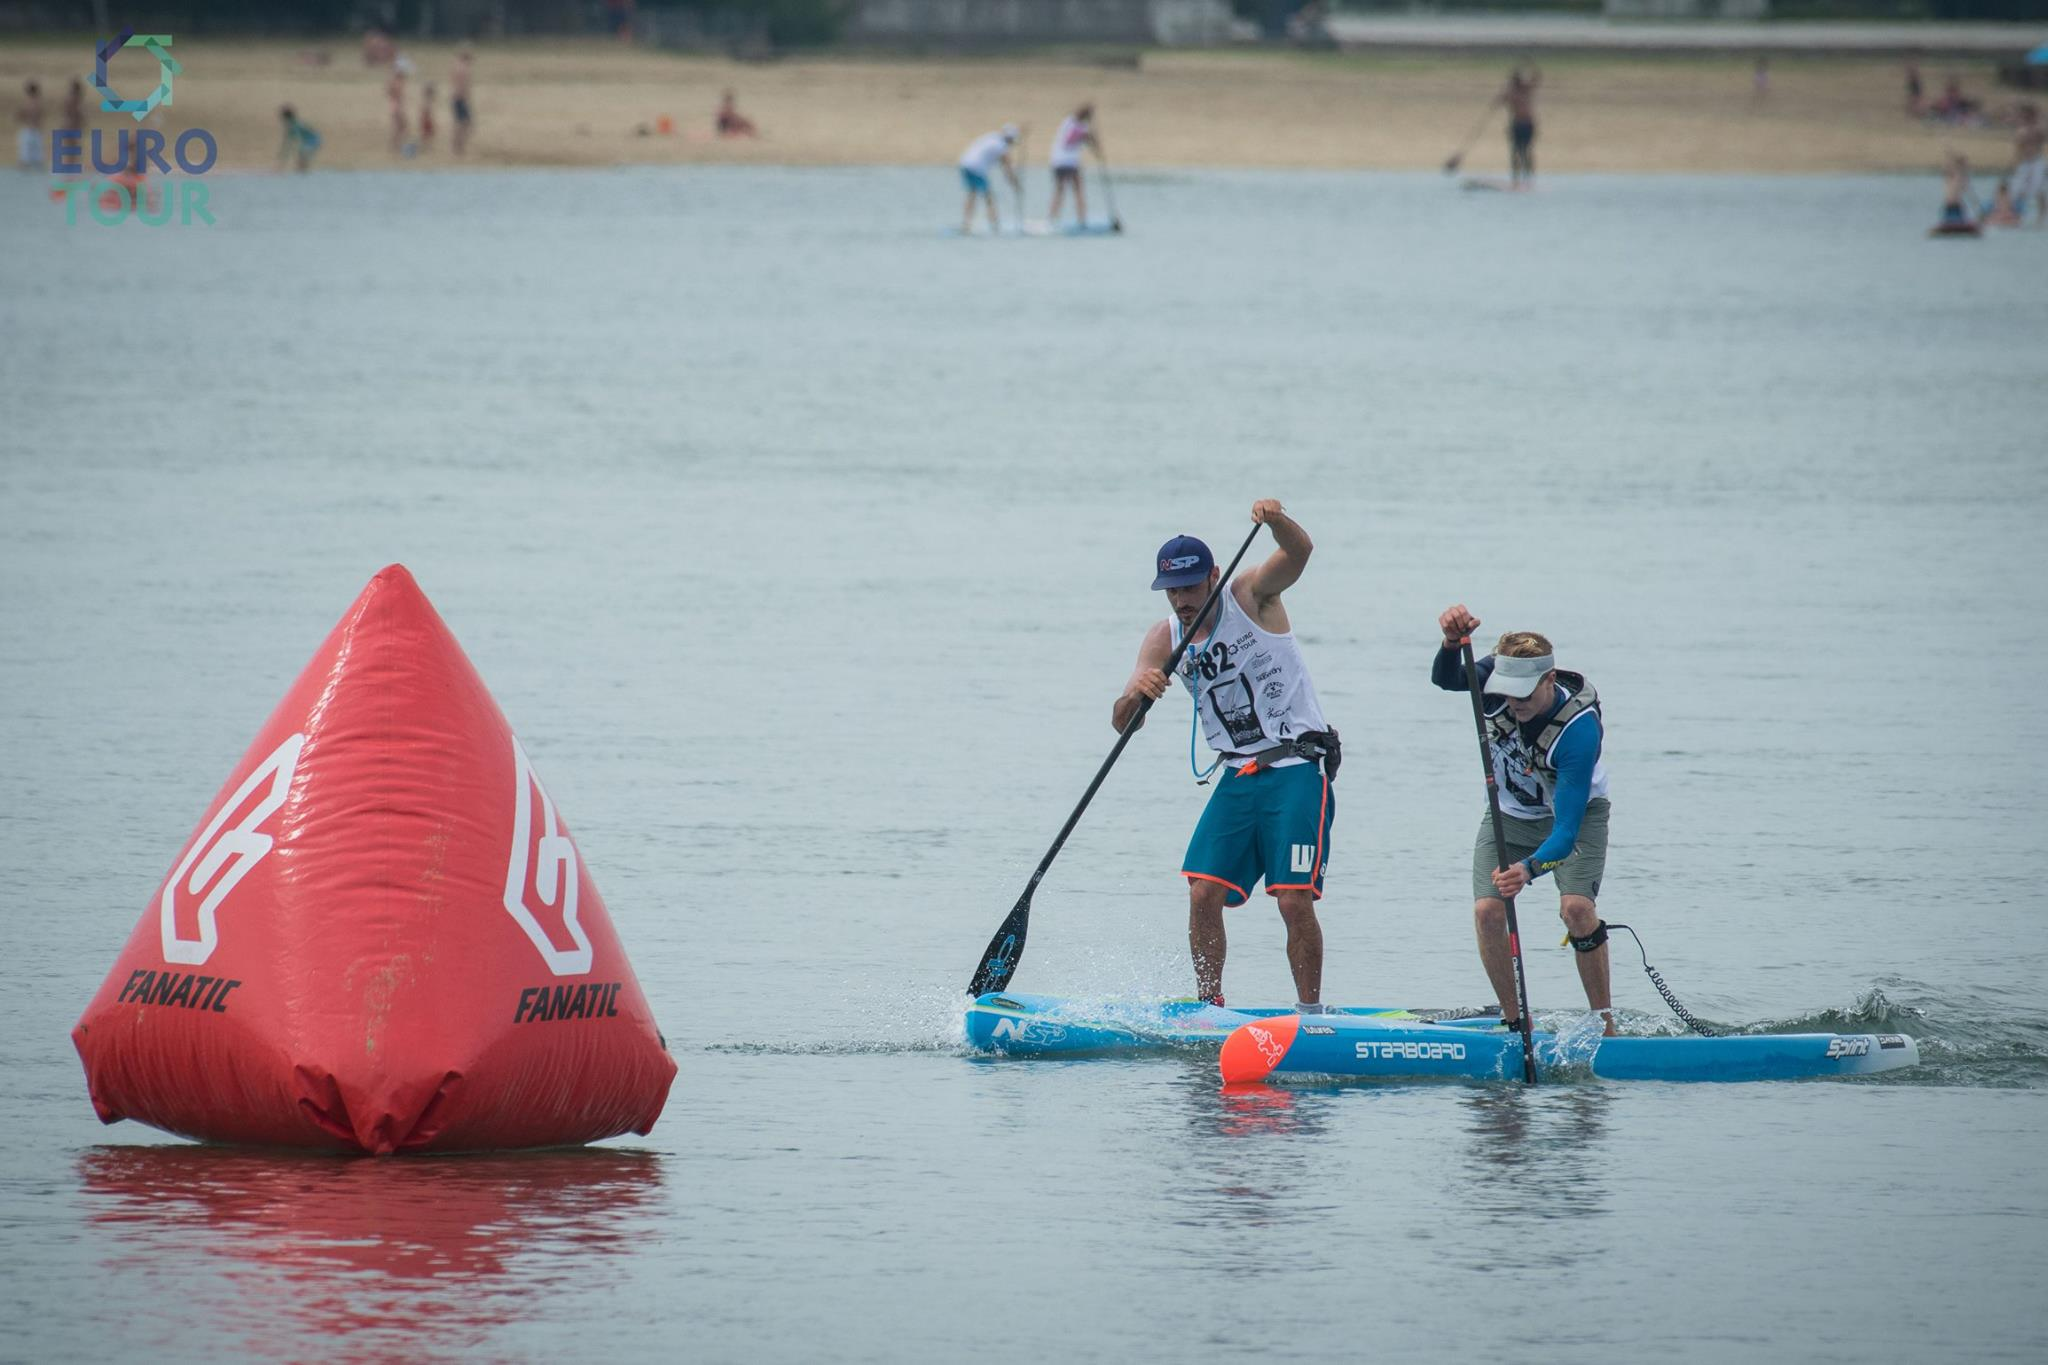 Connor & Titou - sprinting to last buoy